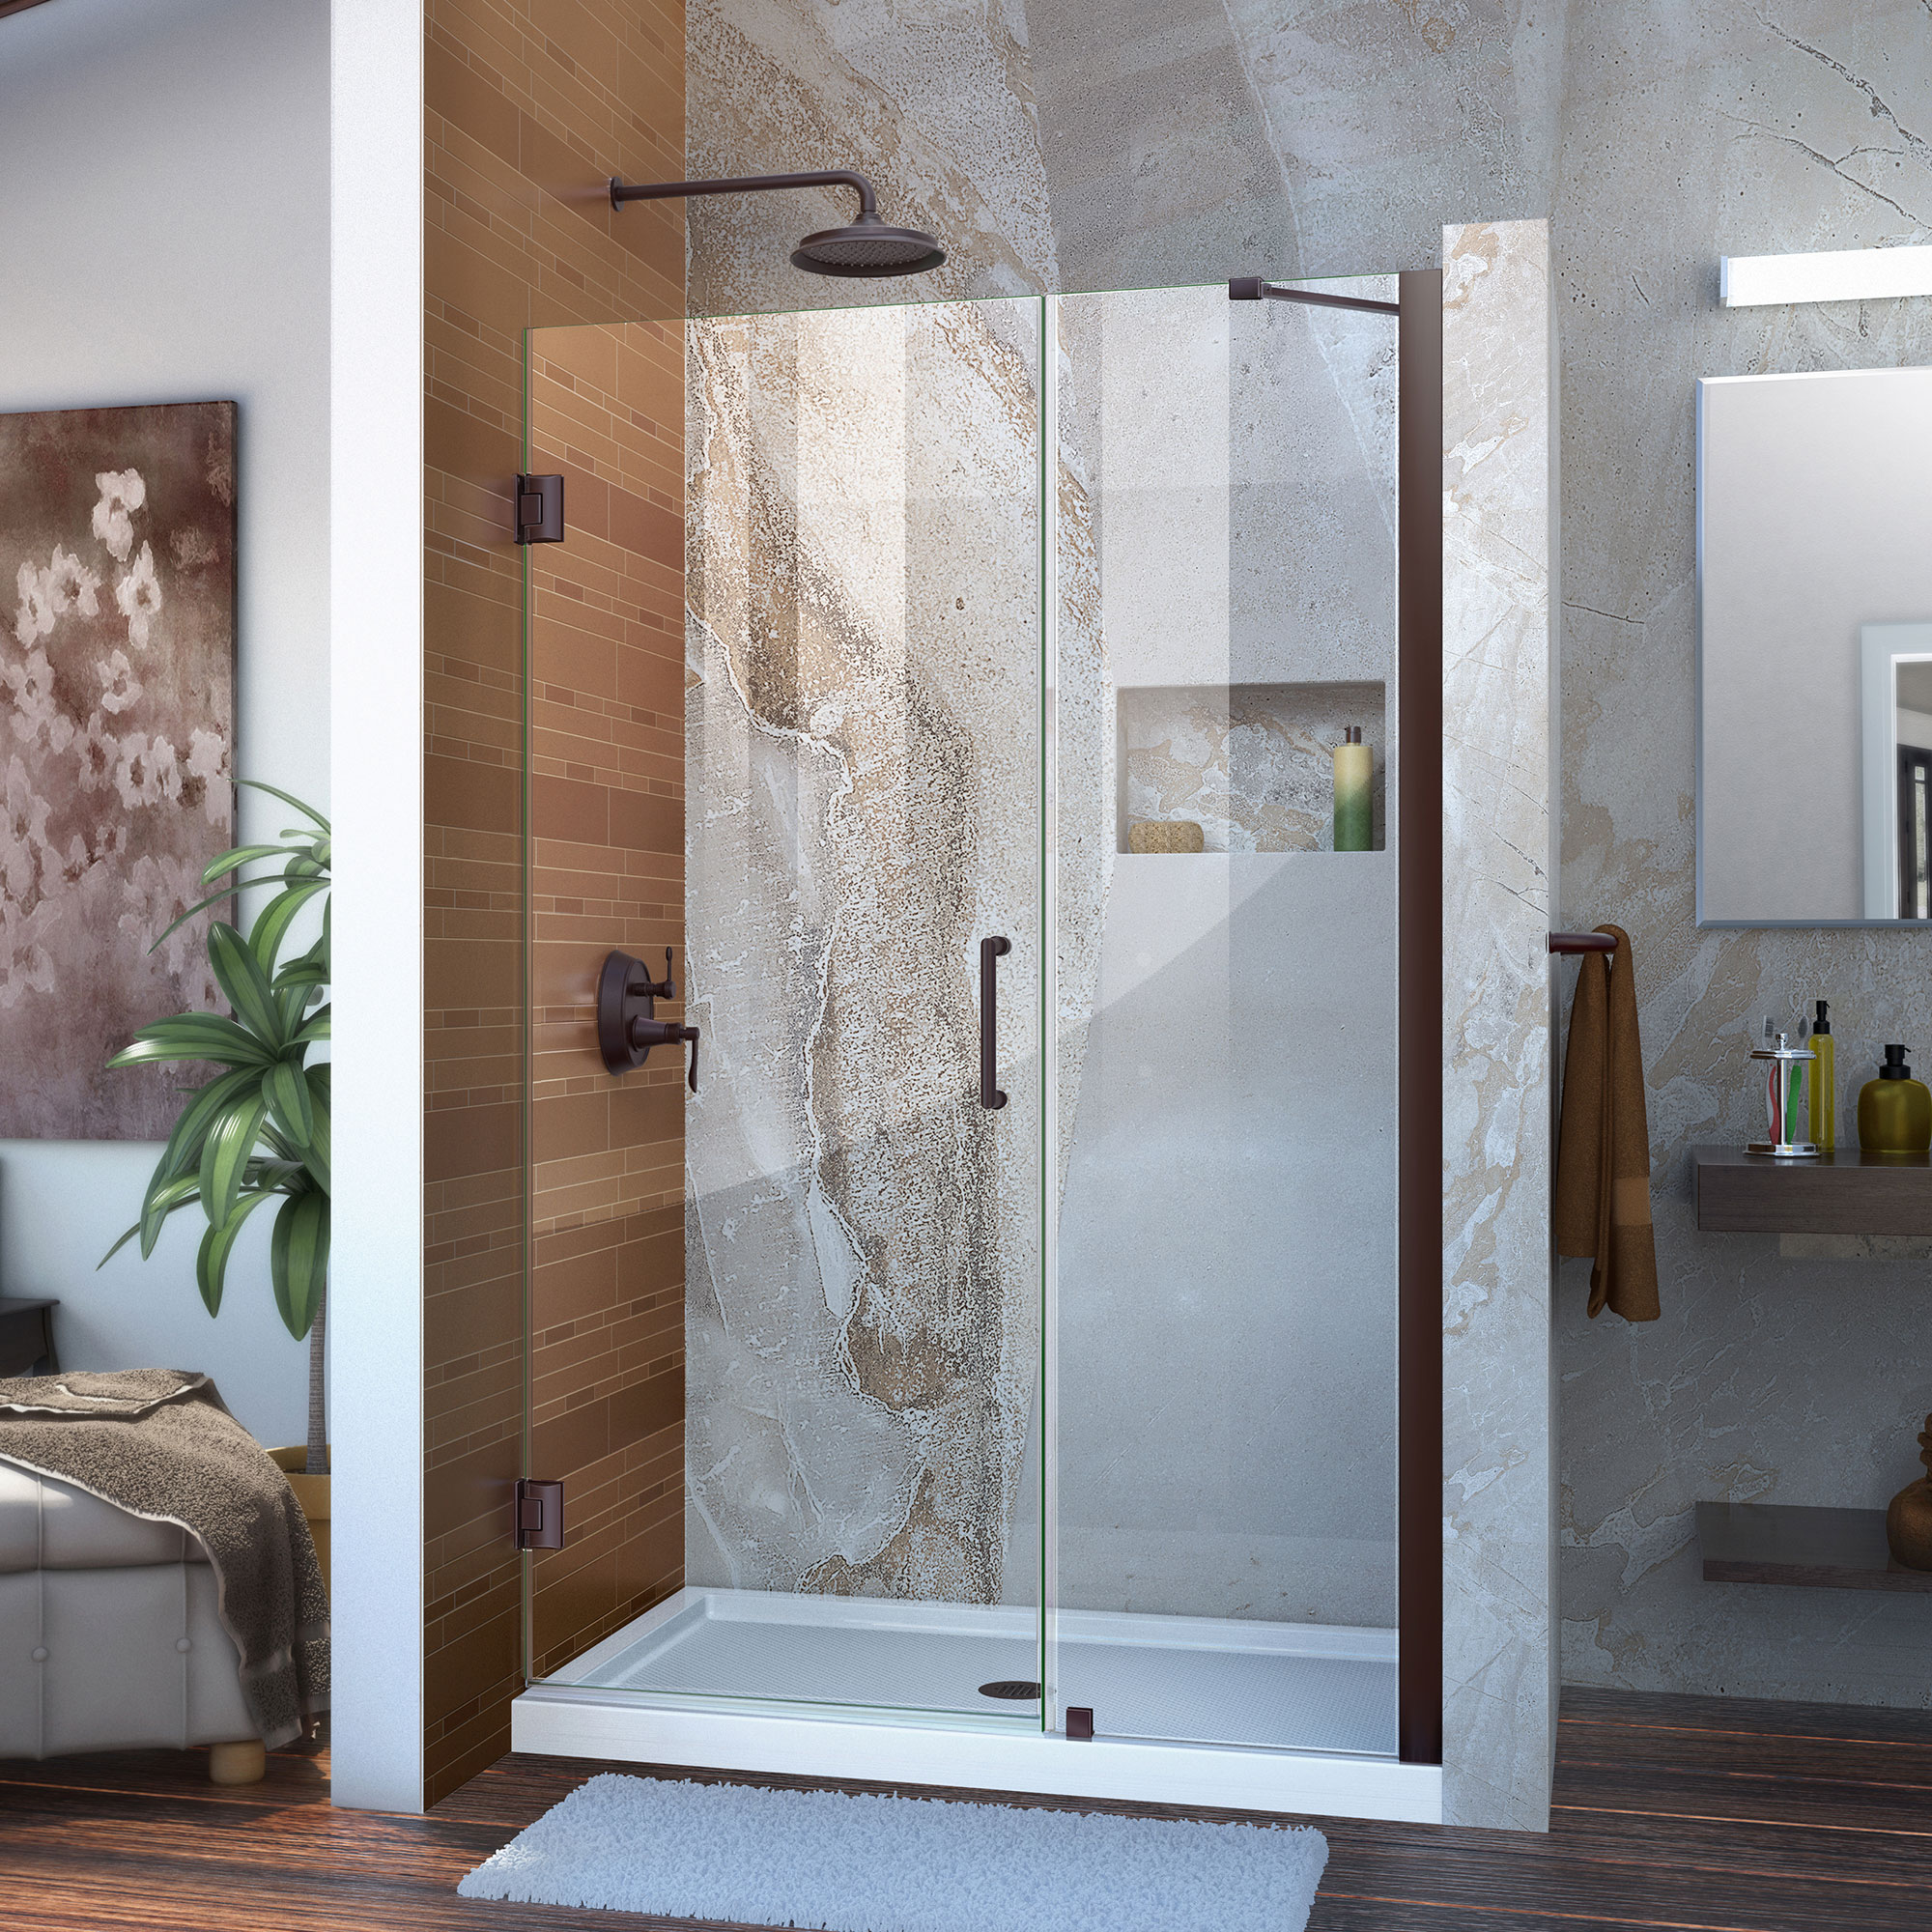 "Unidoor 43 to 44"" Frameless Hinged Shower Door, Clear 3/8"" Glass Door, Brushed Nickel"